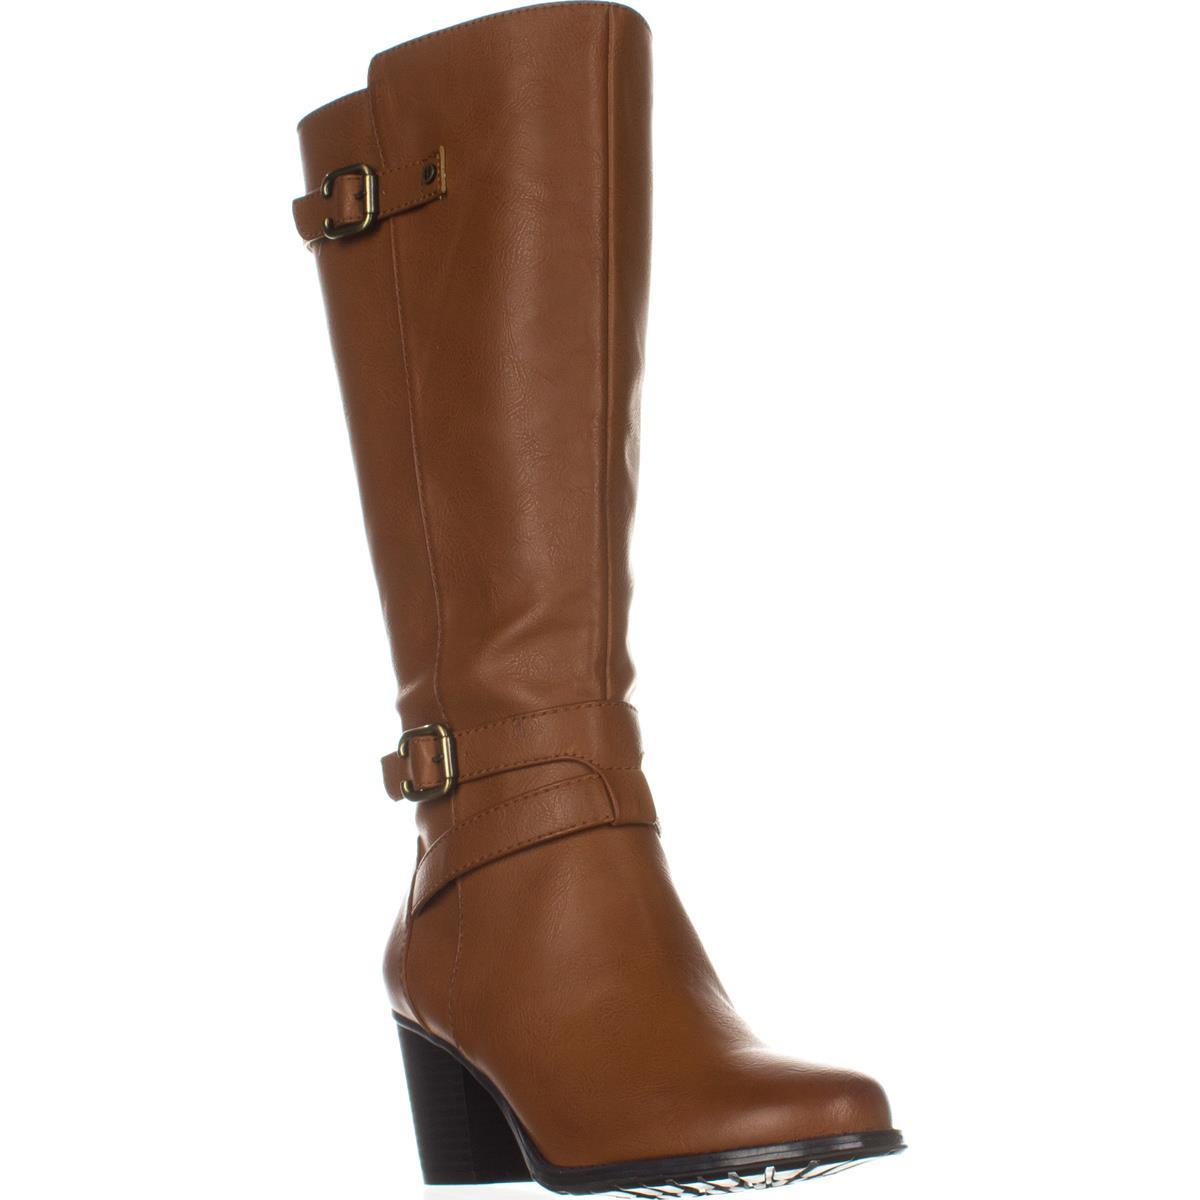 Womens naturalizer Tricia Wide Calf Knee High Boots, Camel